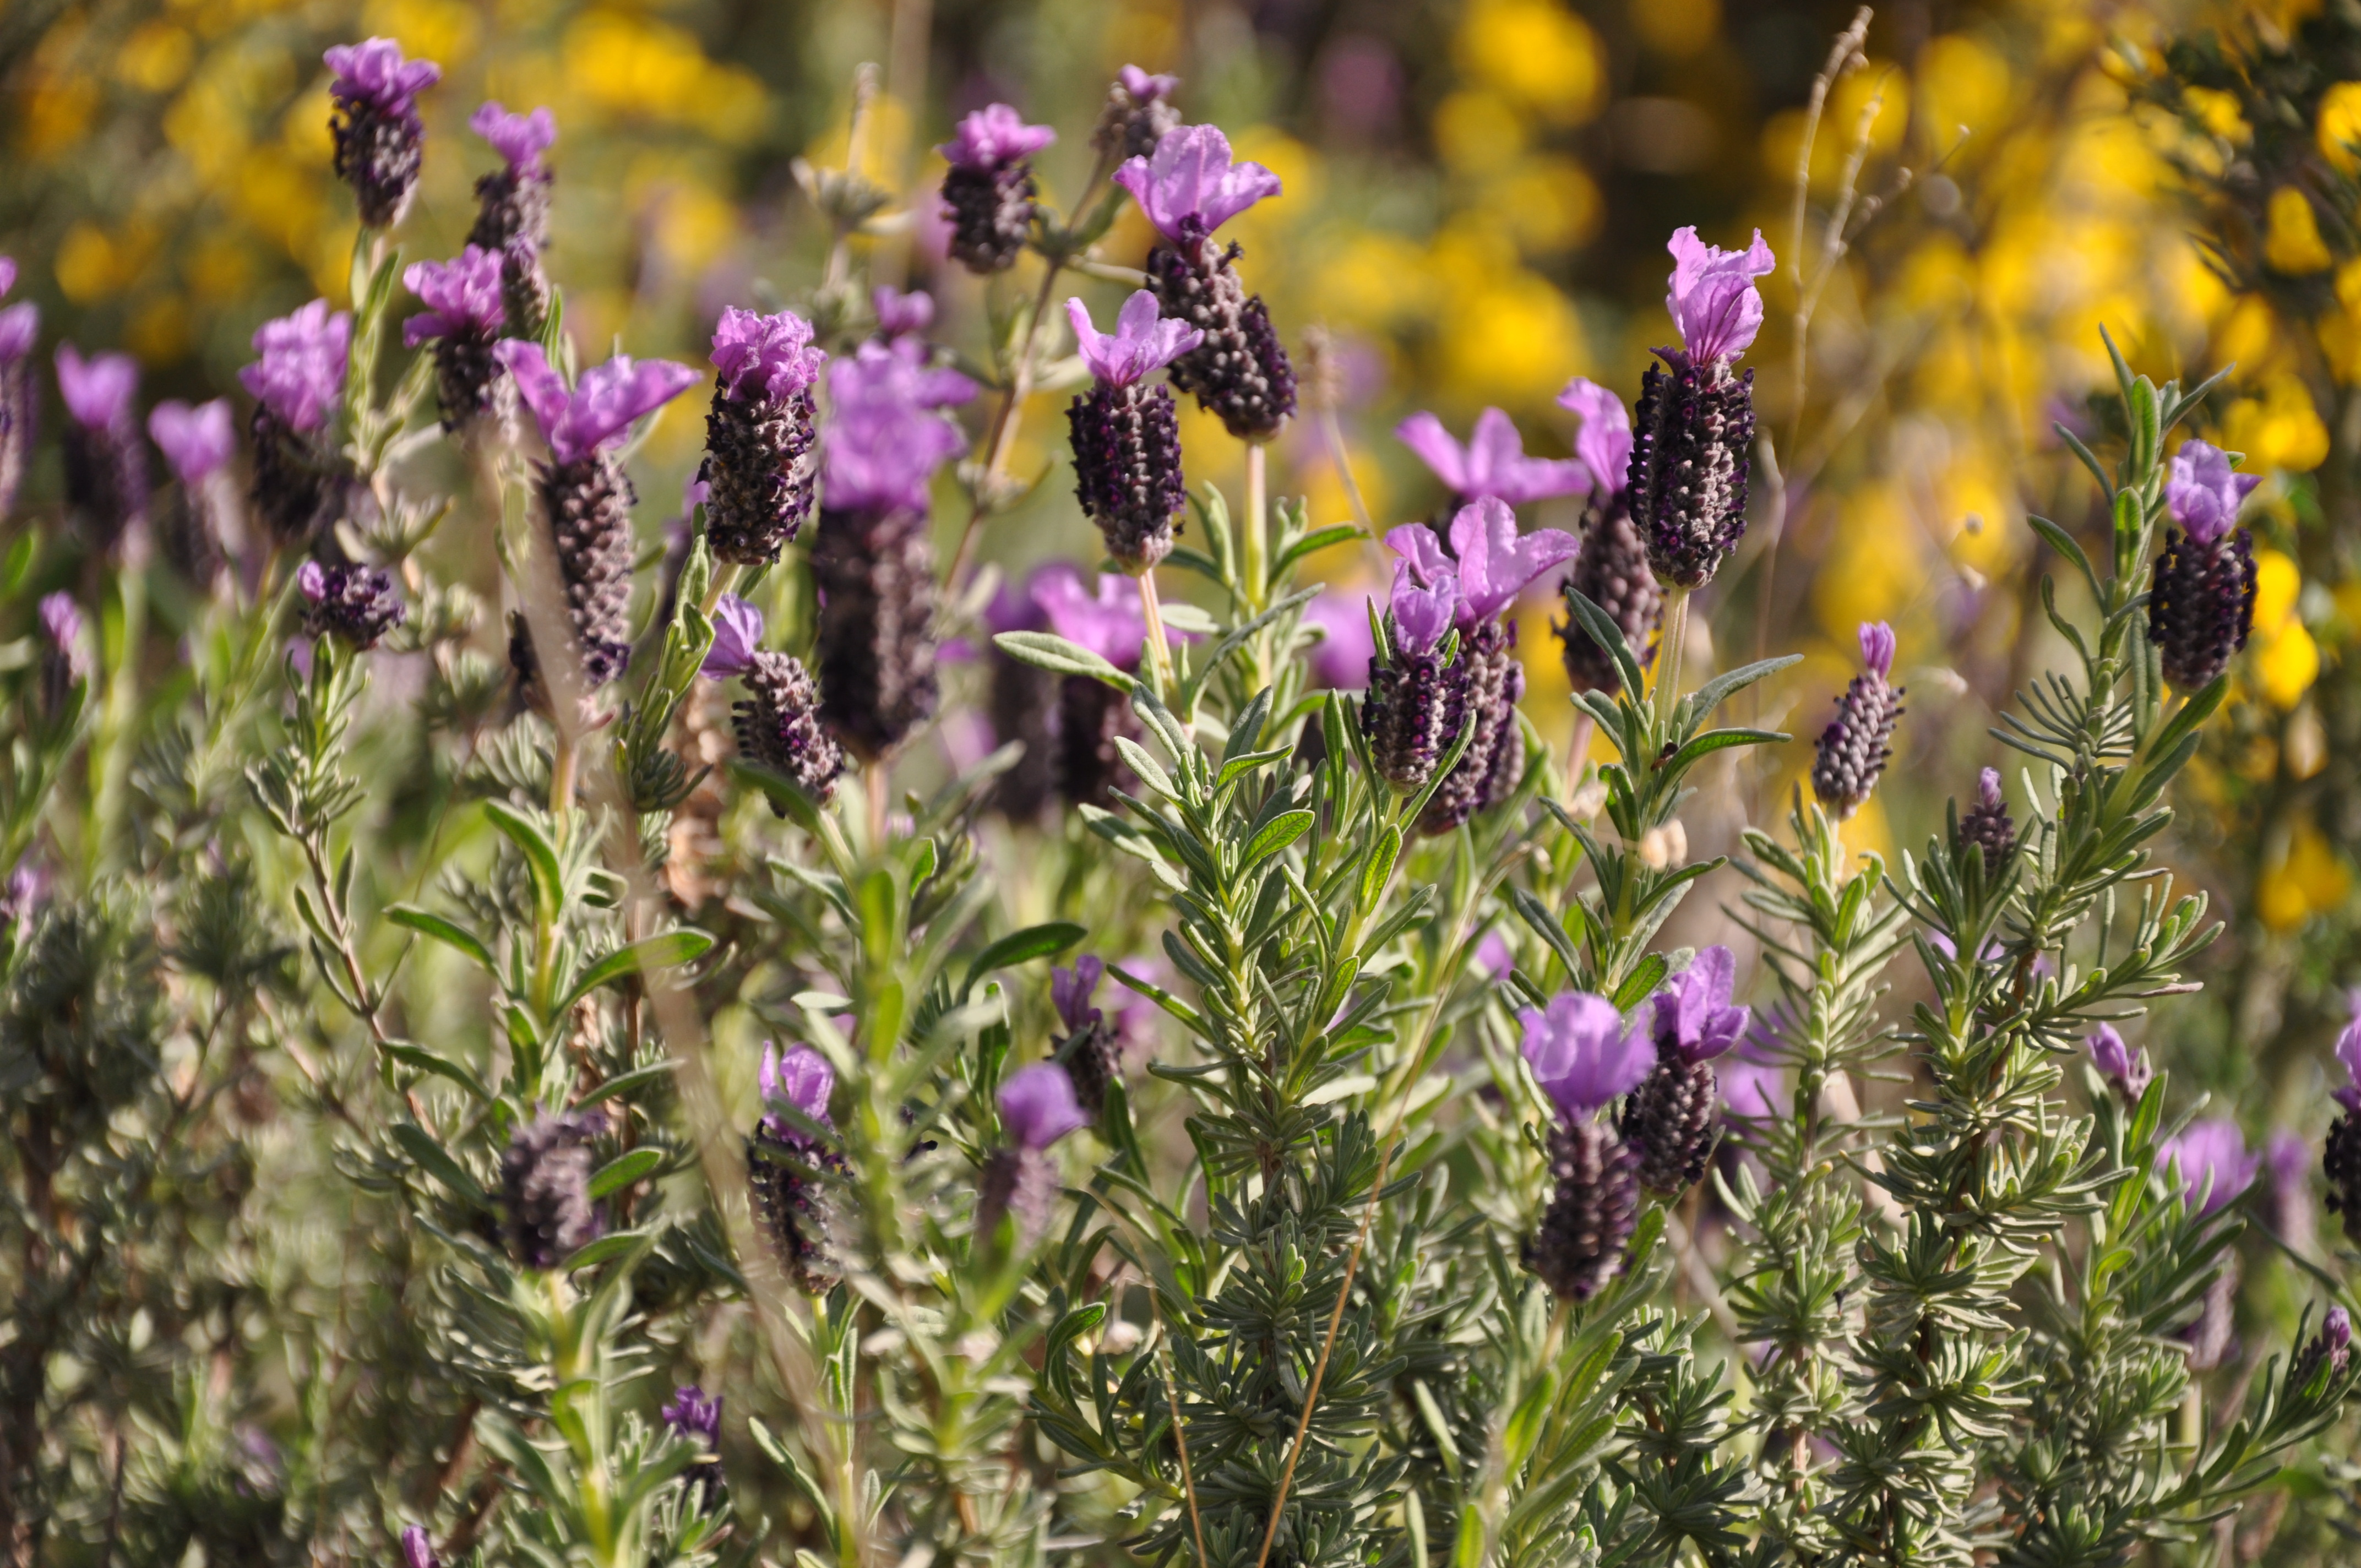 Image of French lavender